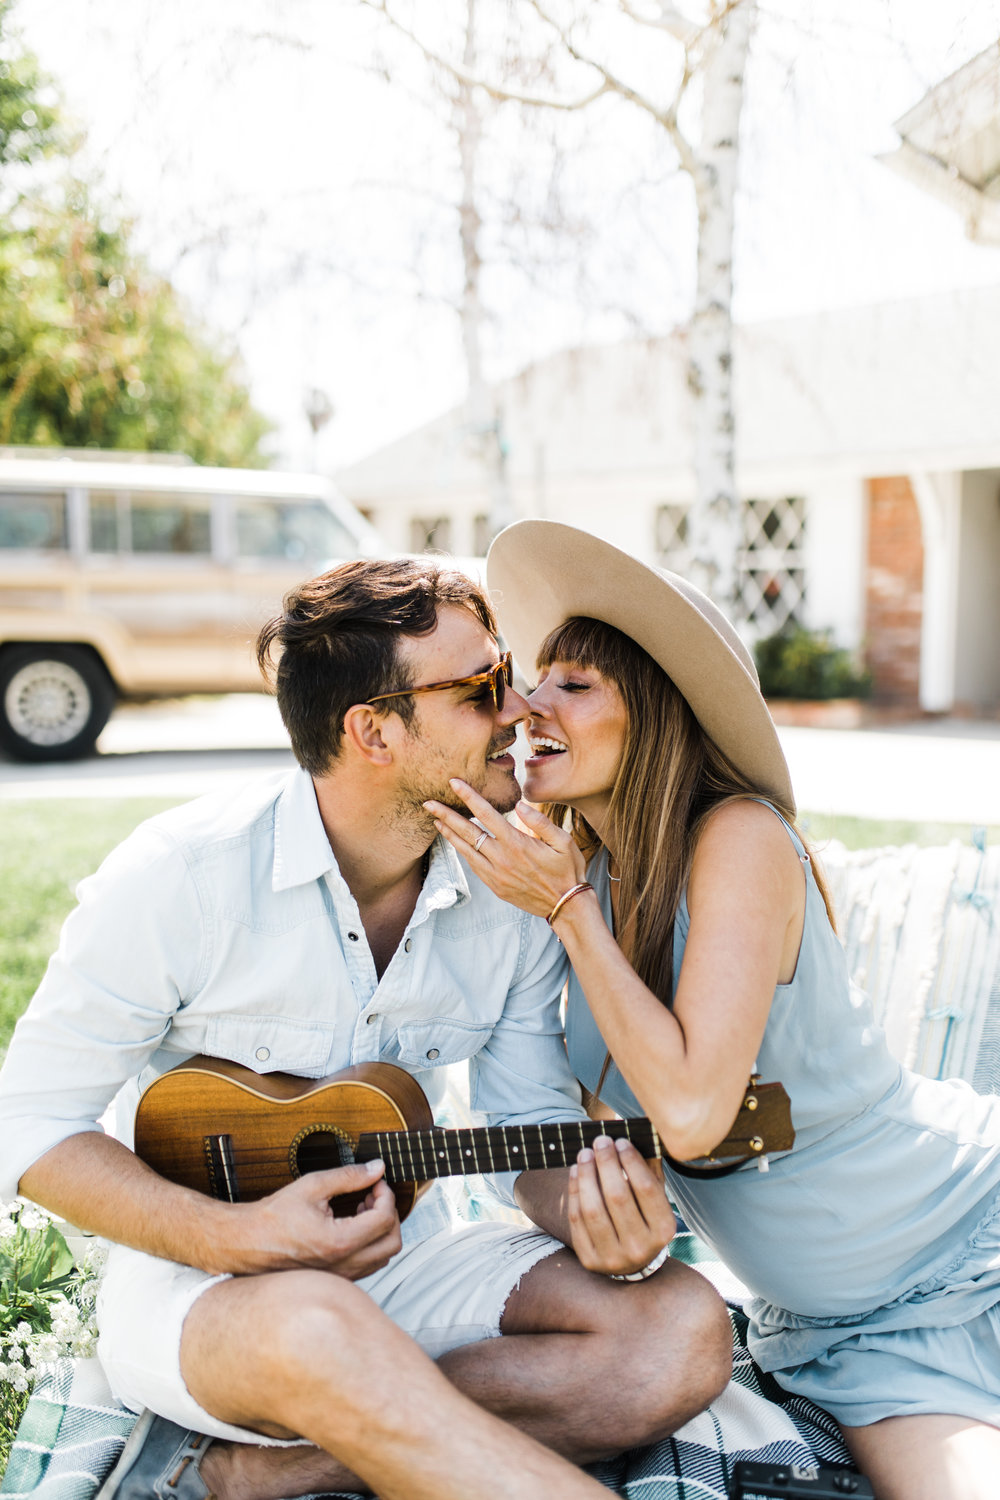 Fernanda&Mariano-Spring-Inspired-Los-Angeles-Engagement-Shoot-Clarisse-Rae-Photo-Video-Southern-California-Wedding-Photographer_32